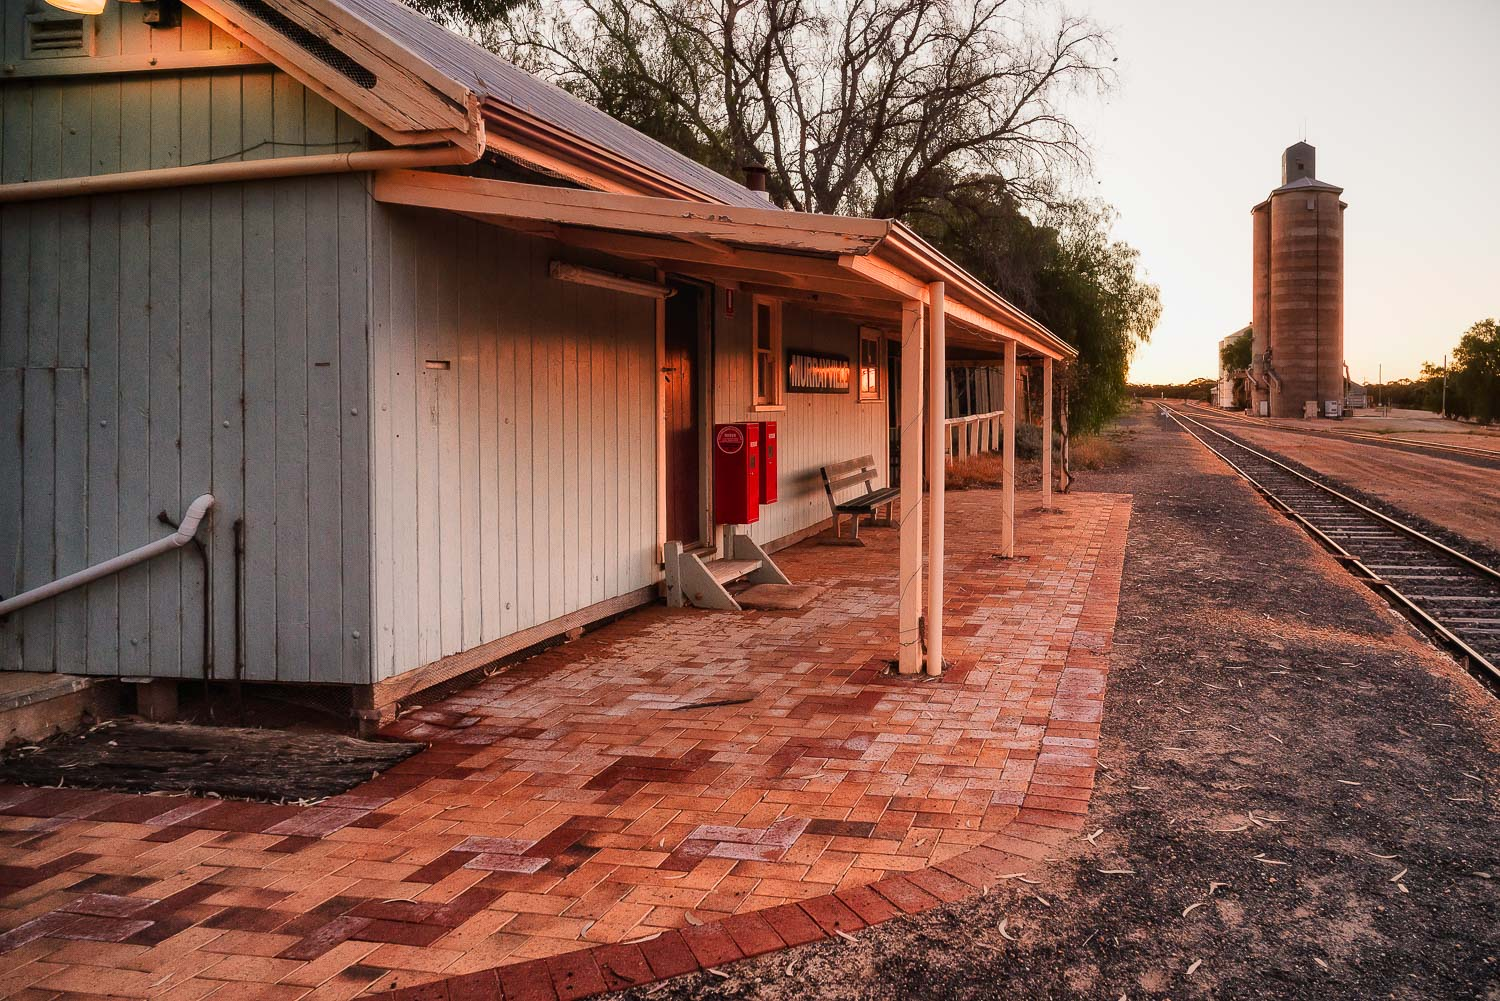 Sunset casting a soft, warm light on the now abandoned  Murrayville Railway Station  in the  Sunraysia  region of  Australia .